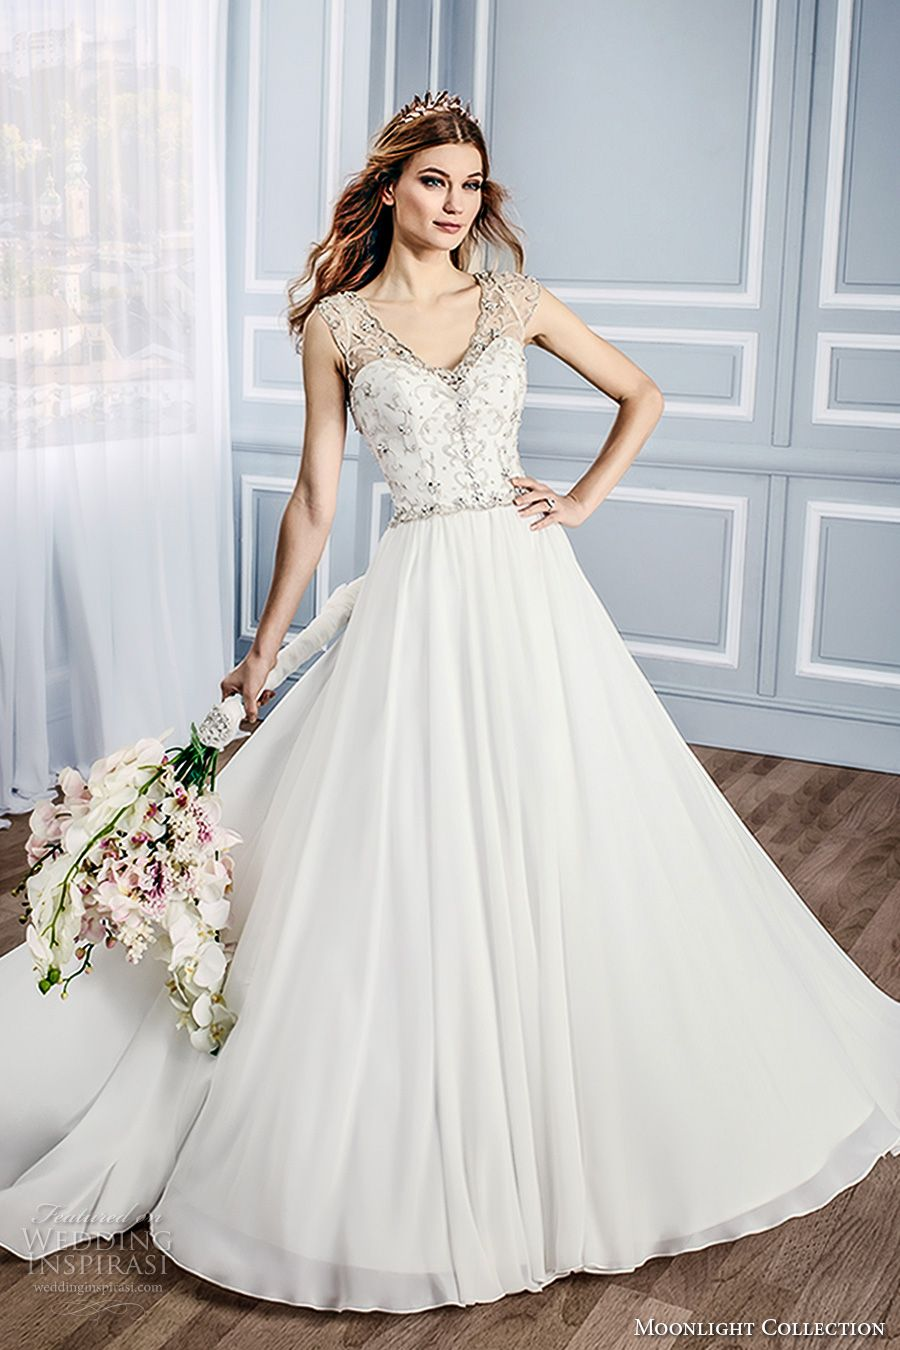 Moonlight collection fall wedding dresses chapel train